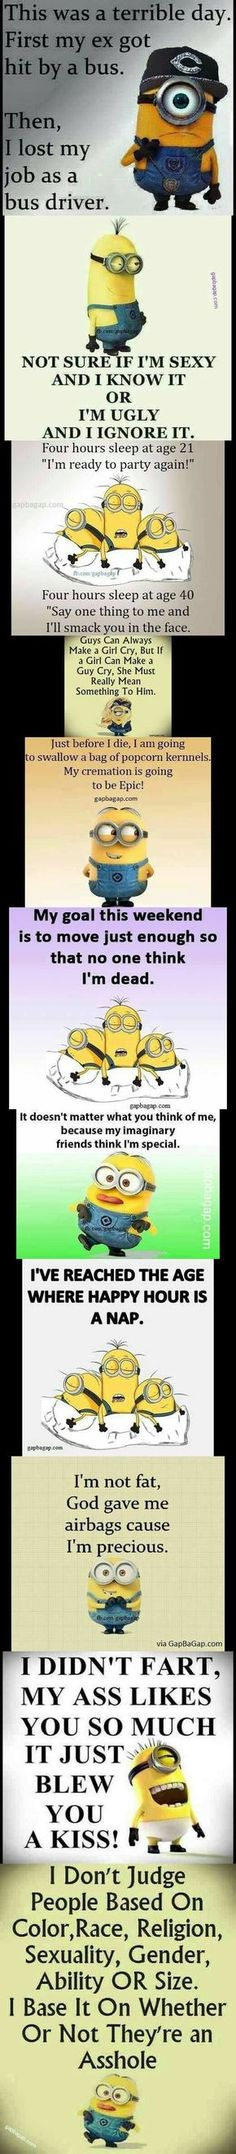 Top 11 Funniest Memes By The - Funny Minions Quotes Funny Minion Memes, Minions Quotes, Funny Texts, Funny Jokes, Funniest Memes, Text Pictures, New Memes, Funny Quotes About Life, Top Funny